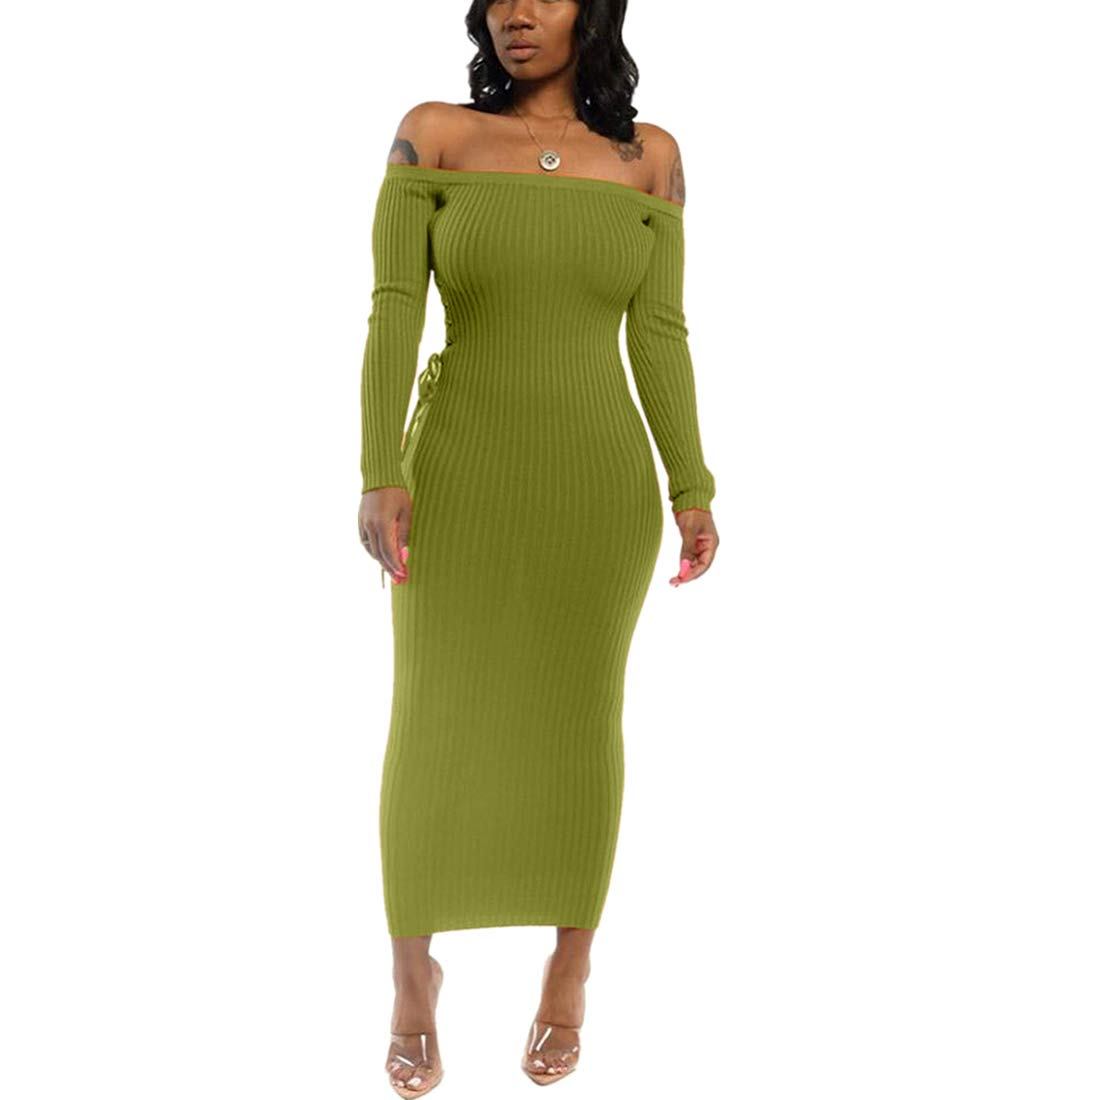 Available at Amazon: Ophestin Long Sleeve Dresses for Women Sexy Elegant Off Shoulder Lace Up Rib Bodycon Party Dress